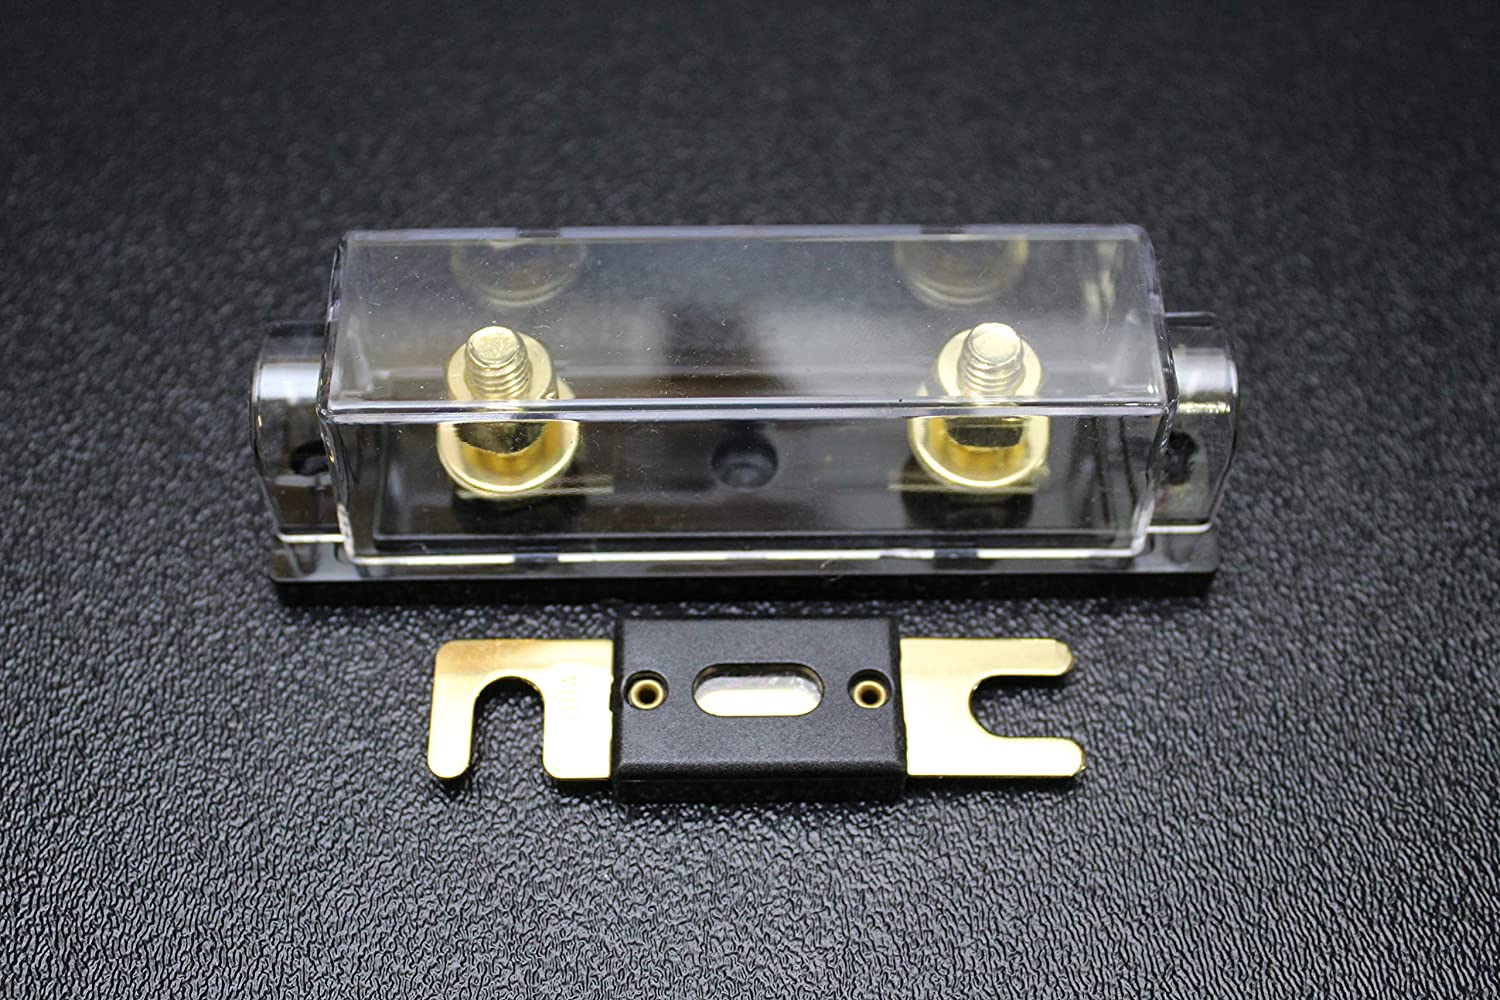 Gold ANL Fuse Holder 1 Foot 0 Gauge Wire 250A Fuse!